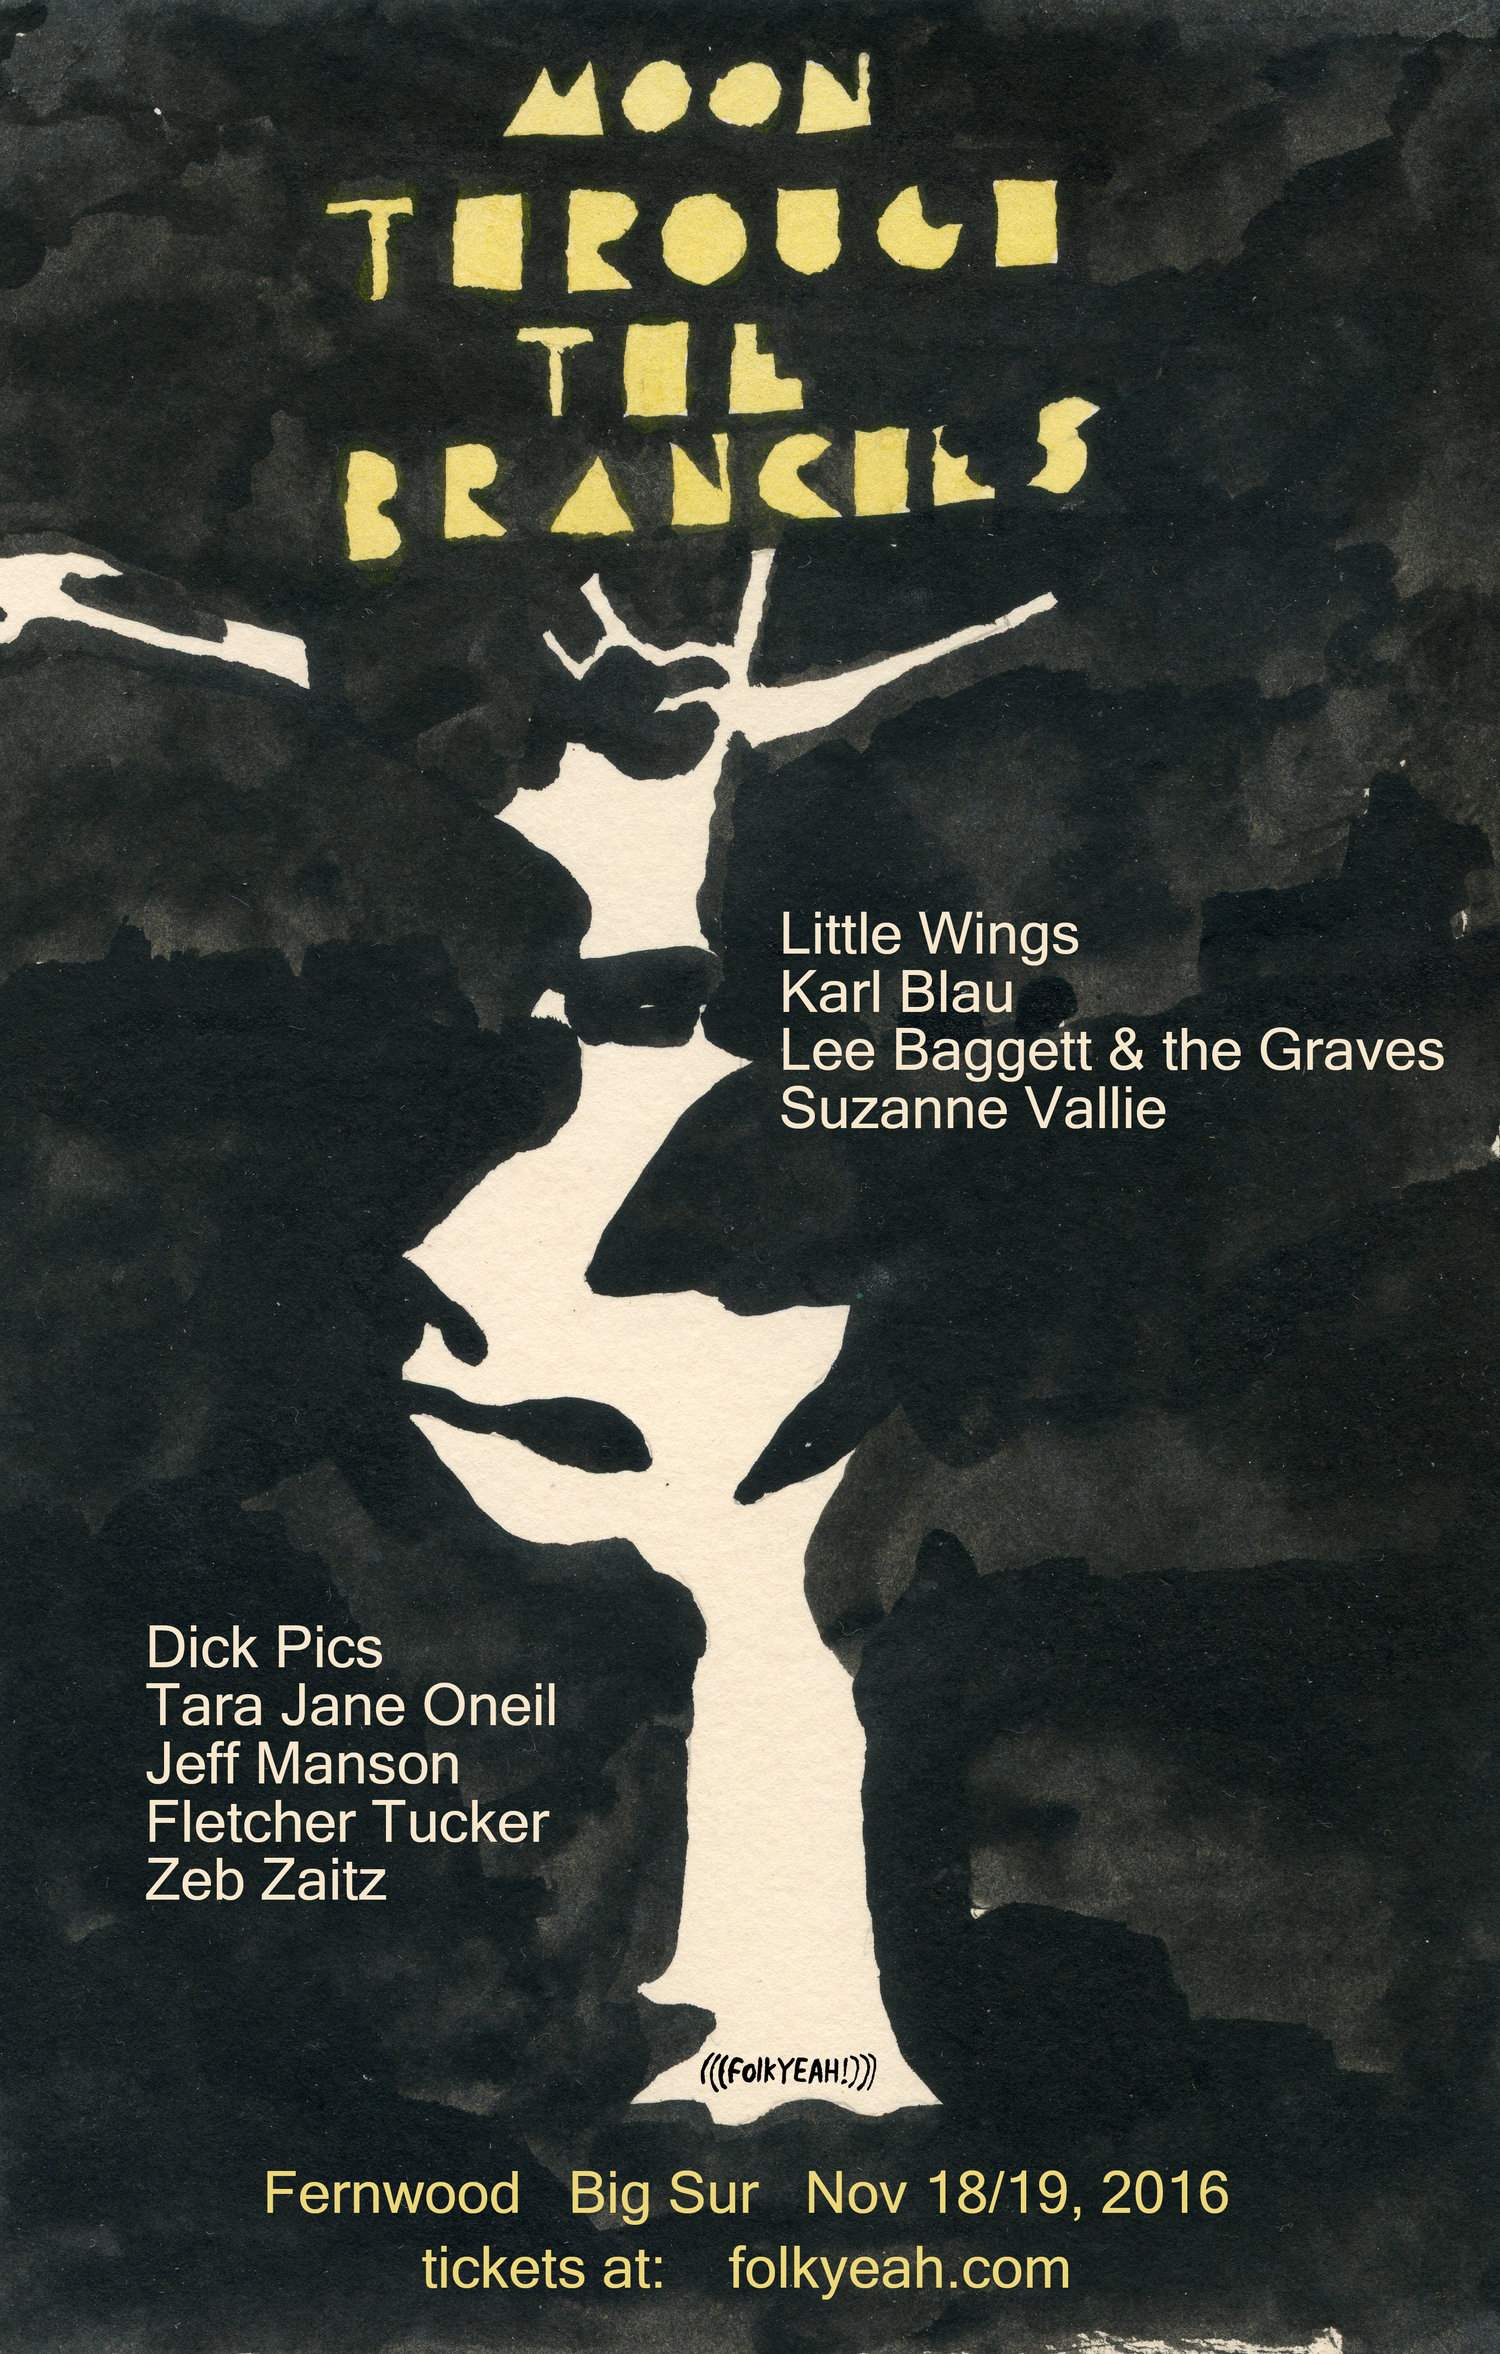 https://www.eventbrite.com/e/moon-through-the-branches-little-wings-curation-in-big-sur-nov-1819-2016-tickets-27781276546